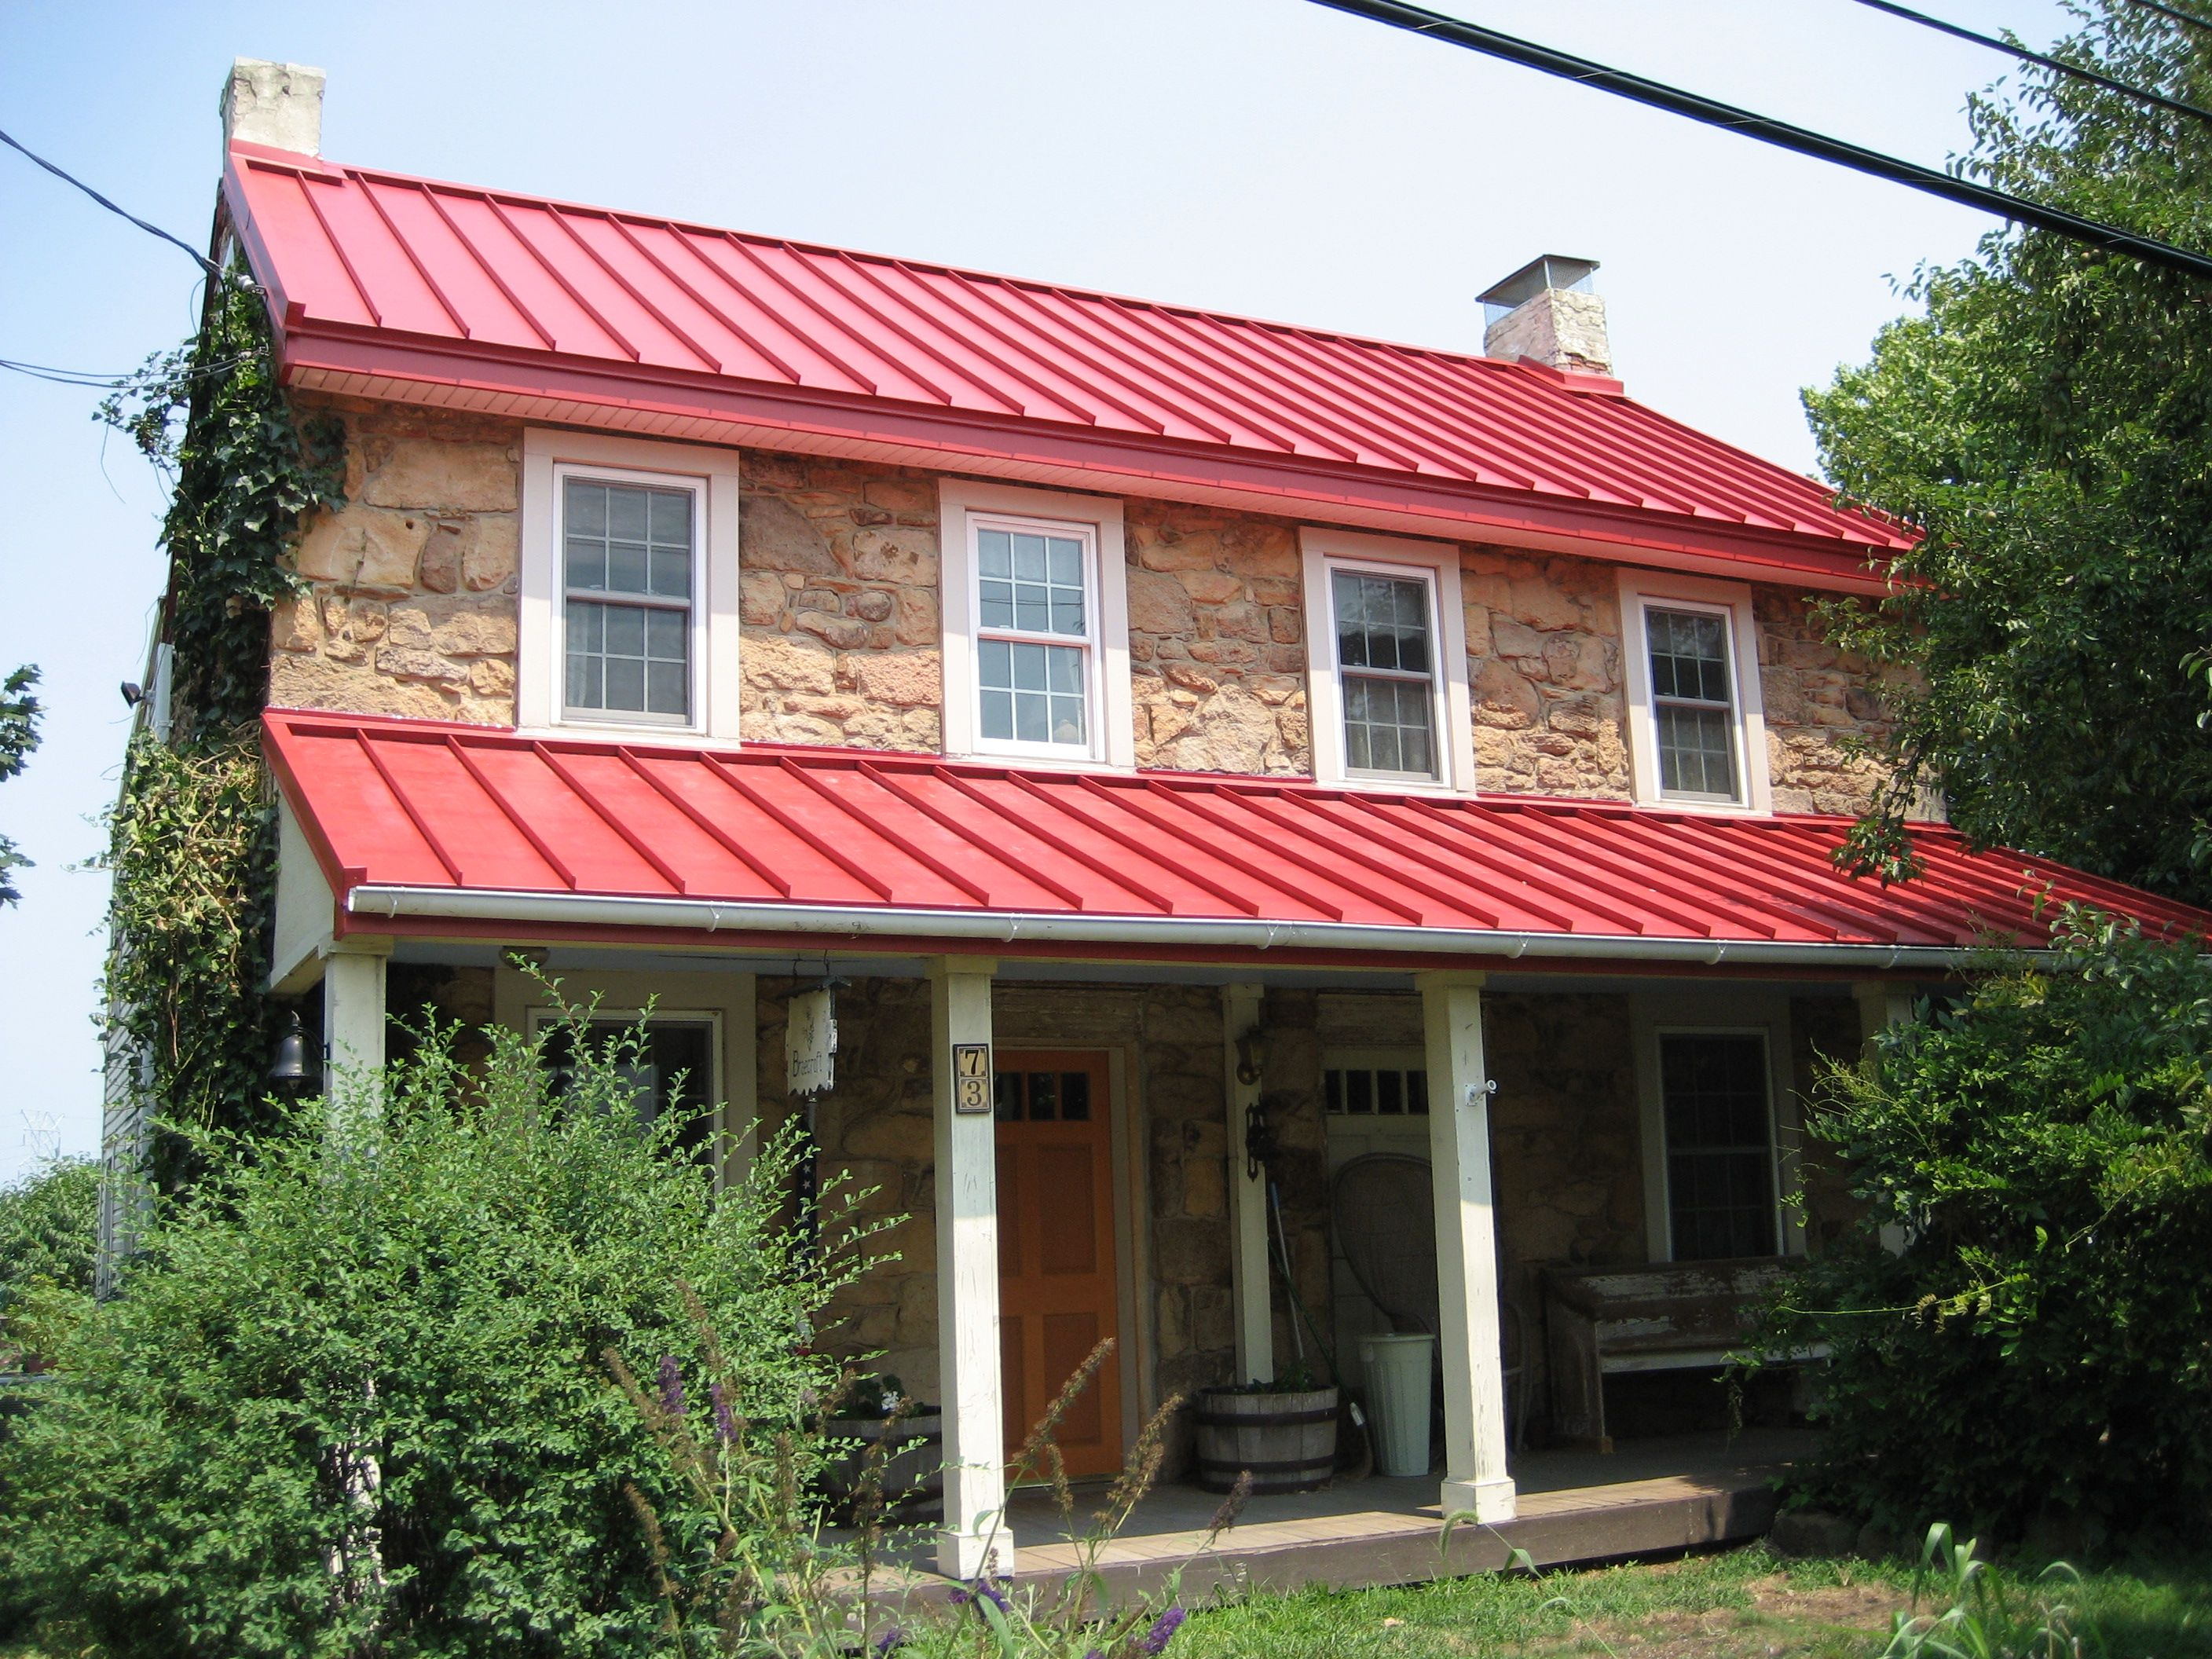 Drexel metals brilliance red metal roof metal roofs for Metal roof pictures brick house